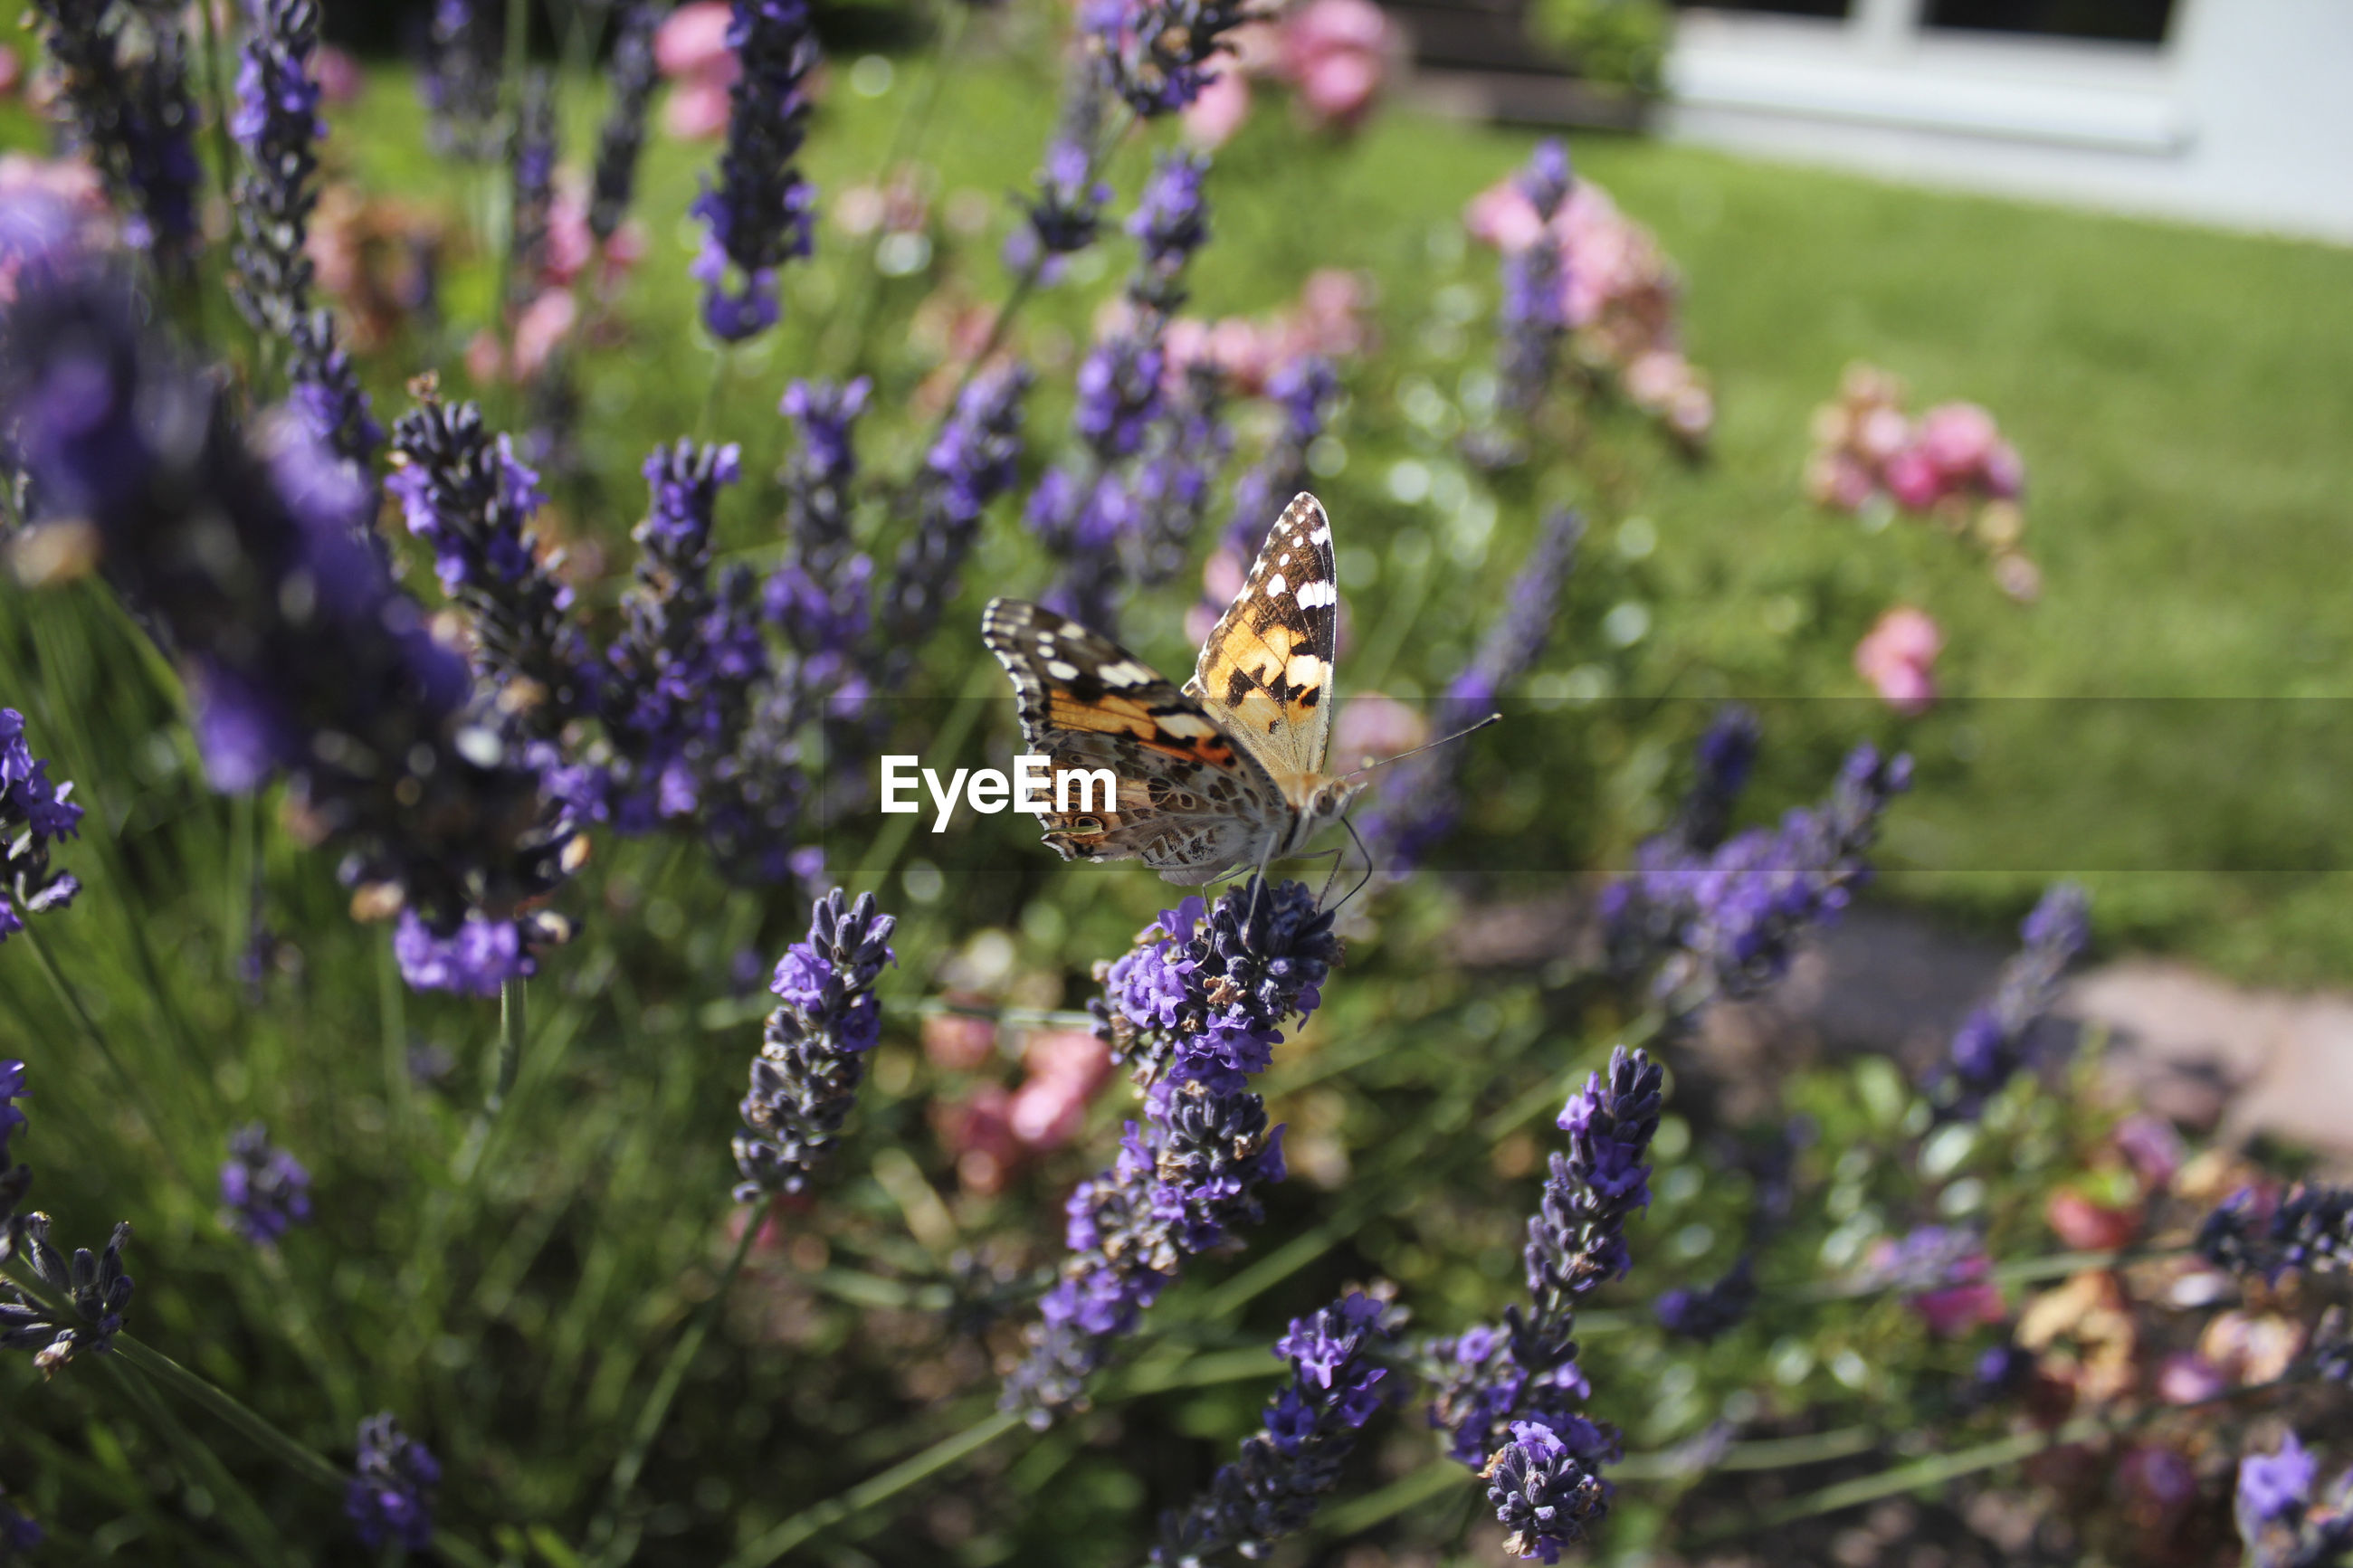 Butterfly on lavender blooming outdoors